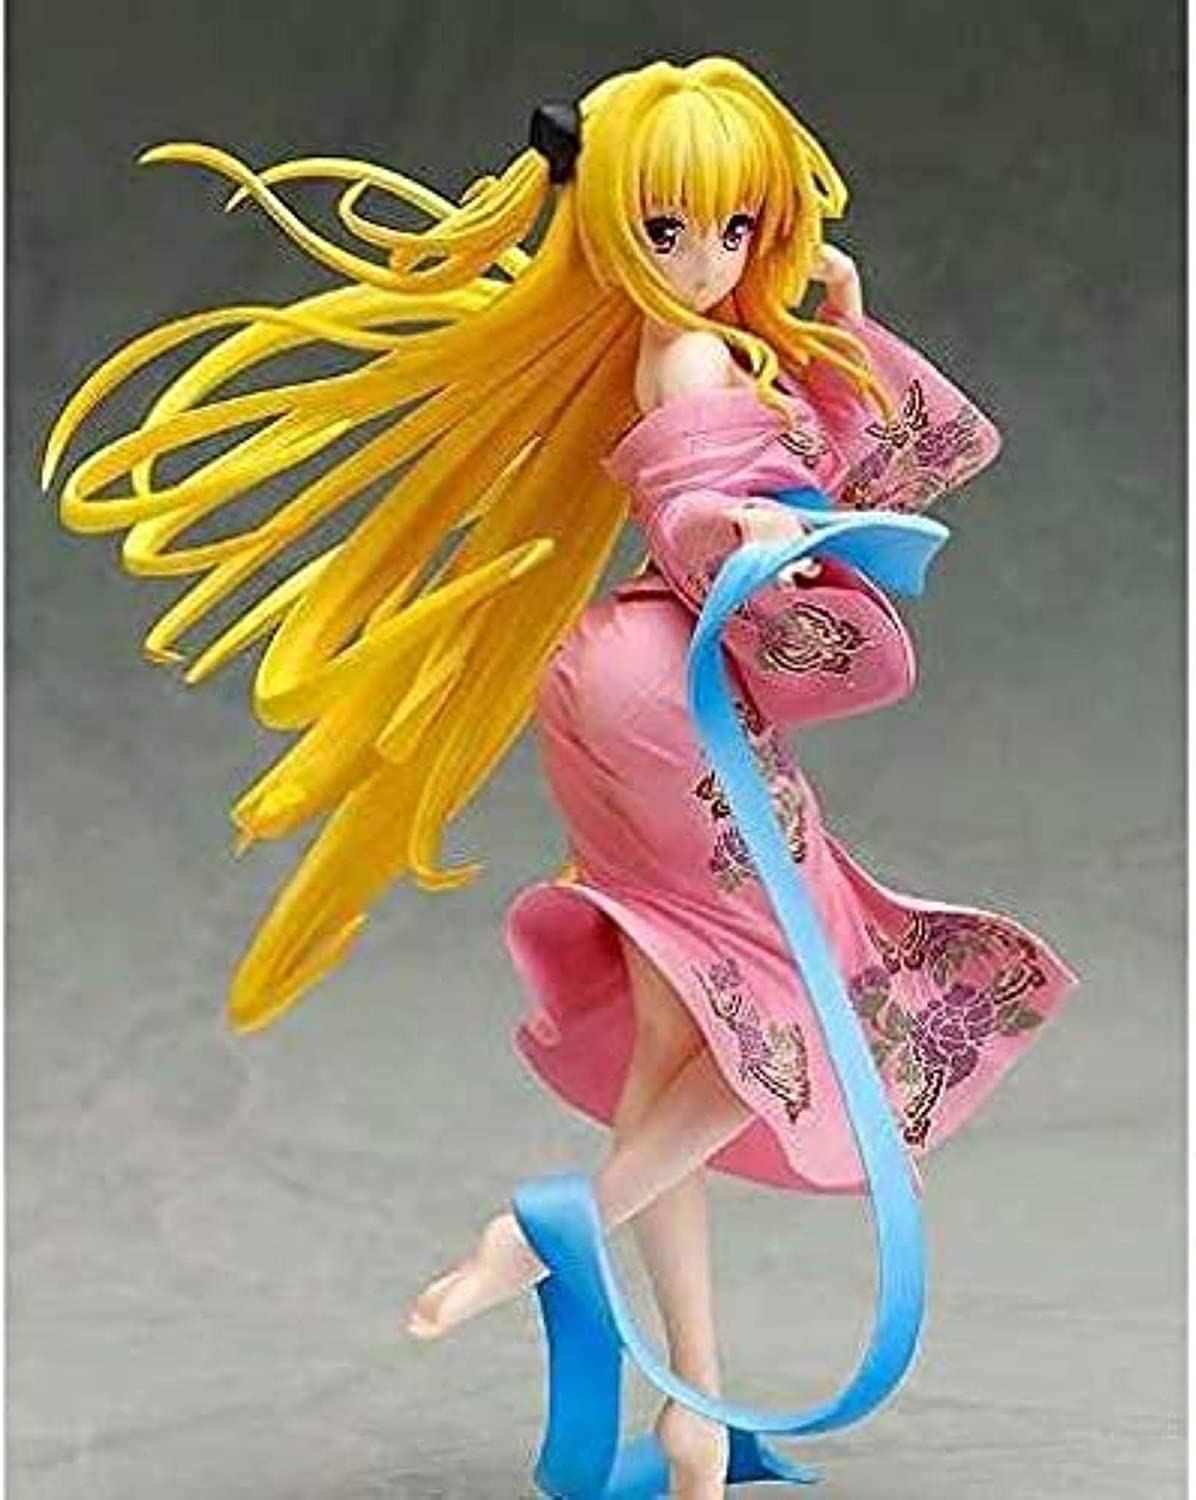 to Love-Ru Eve in Bathrobe 55% OFF Game Cartoon Figures Anime All items free shipping Character